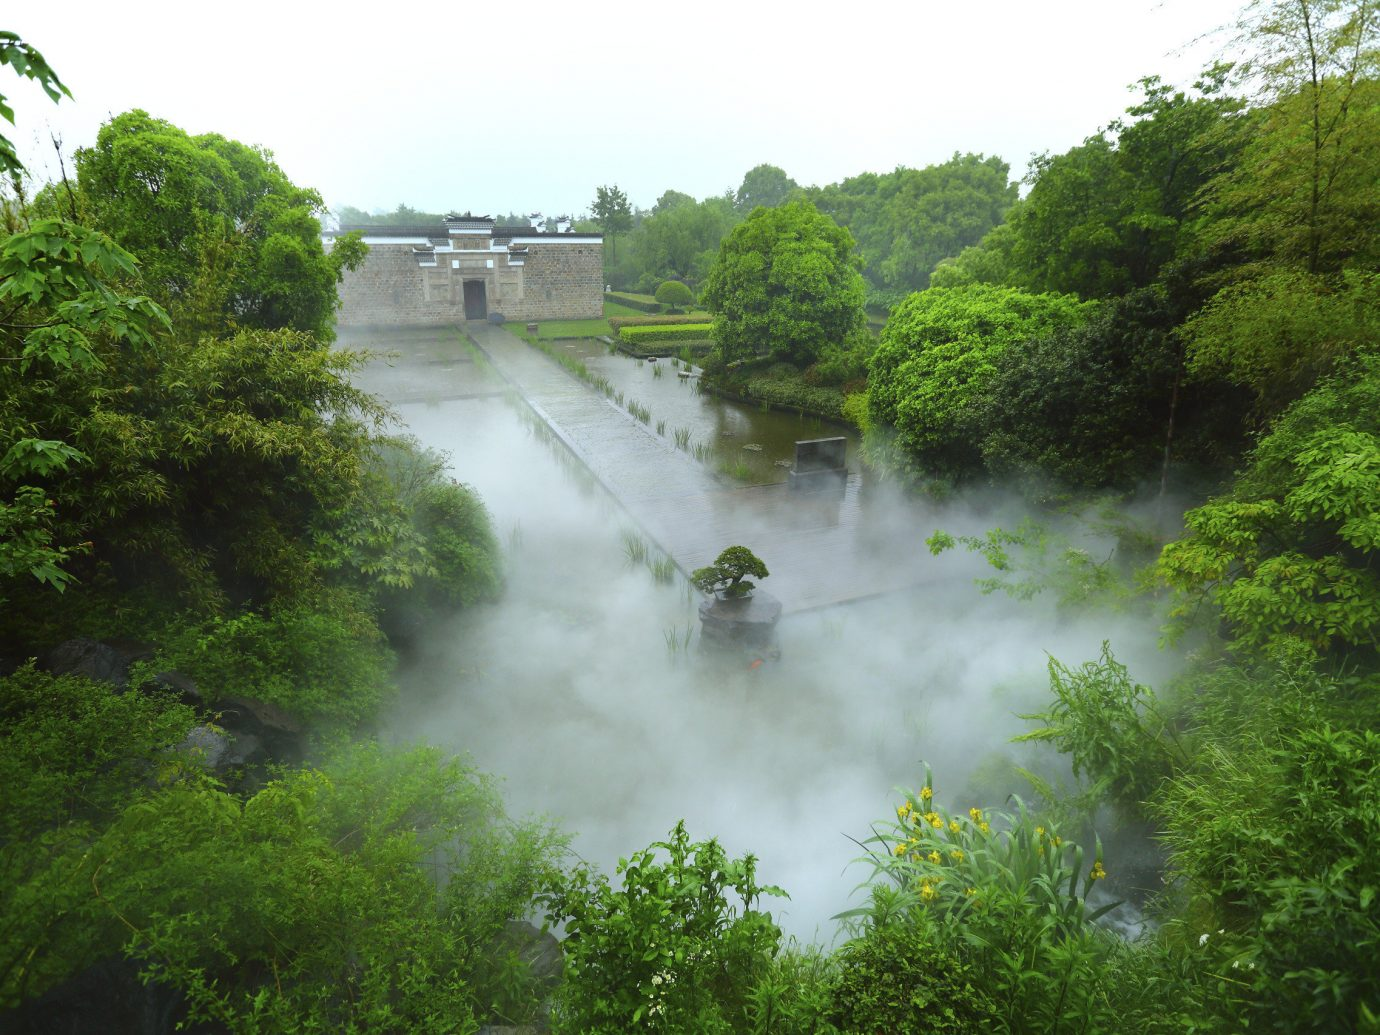 Boutique Hotels Hotels Luxury Travel tree train sky outdoor track water Nature green vegetation water resources body of water nature reserve River smoke waterway steam watercourse leaf hill station rainforest Forest bank grass mist traveling Jungle water feature landscape coming stream floodplain plant fluvial landforms of streams tributary riparian zone moving wooded surrounded lush